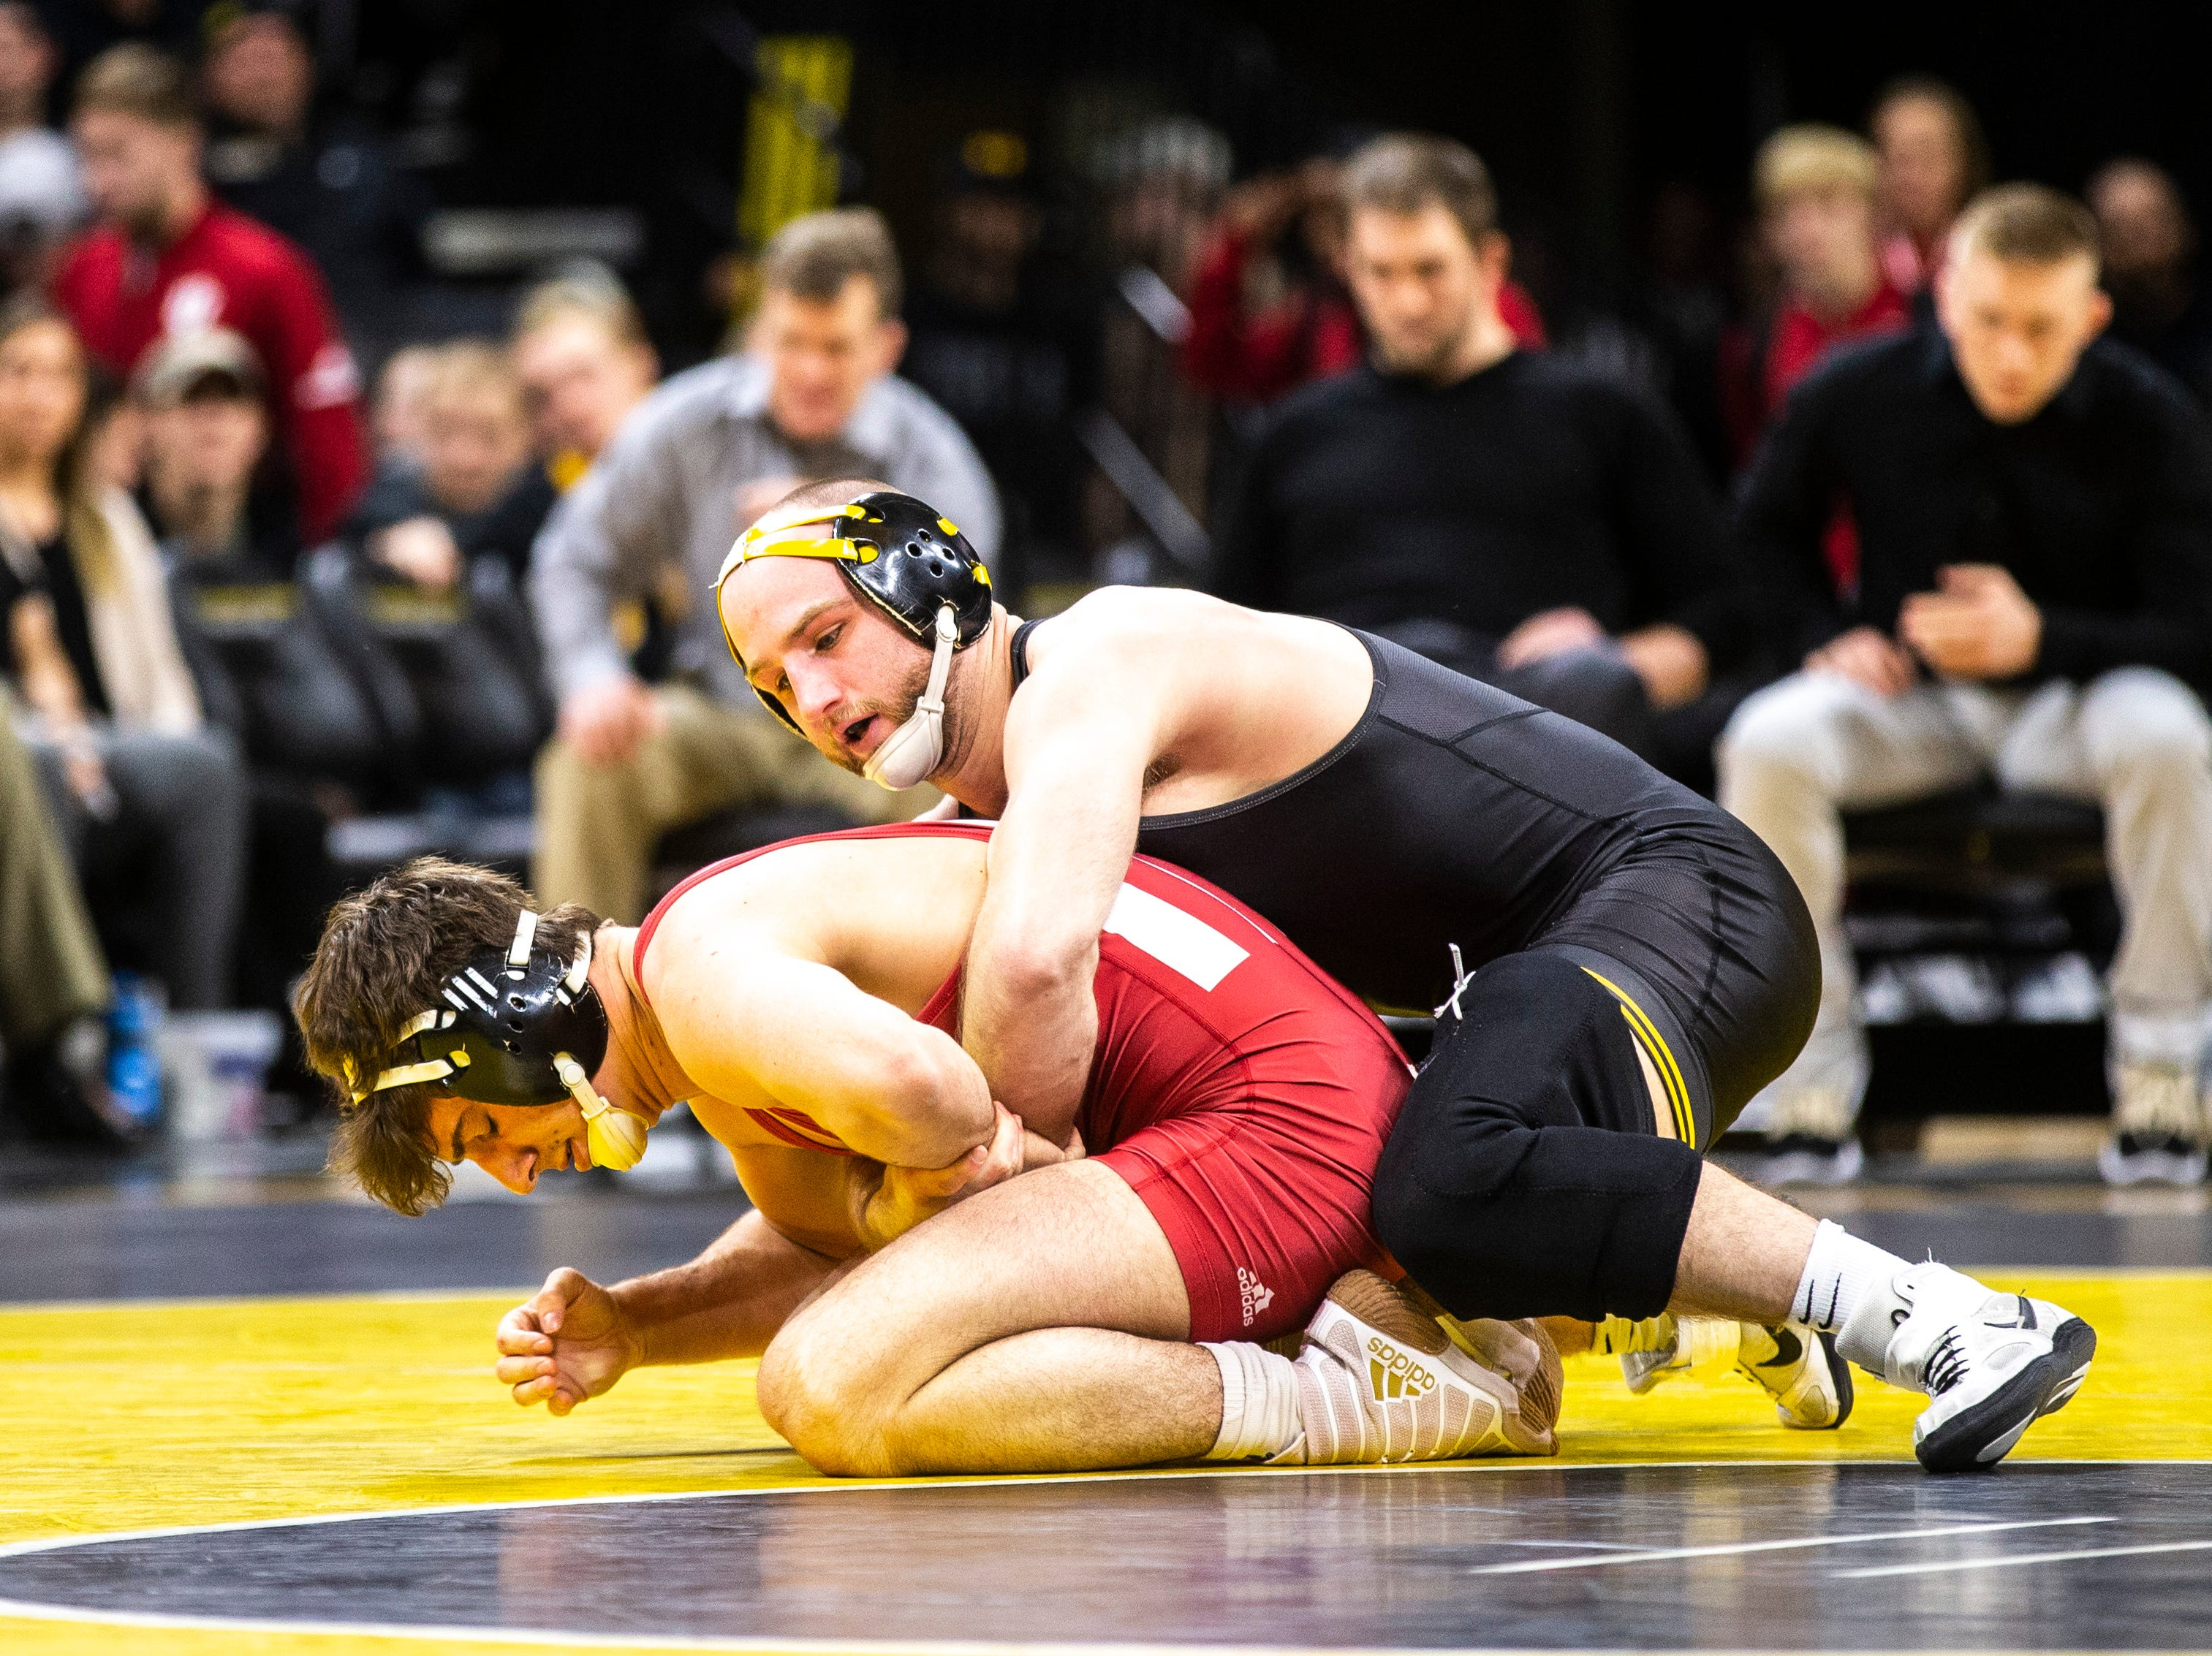 Iowa's Alex Marinelli, right, wrestles Indiana's Dillon Hoey at 165 during a NCAA Big Ten Conference wrestling dual on Friday, Feb. 15, 2019 at Carver-Hawkeye Arena in Iowa City, Iowa.